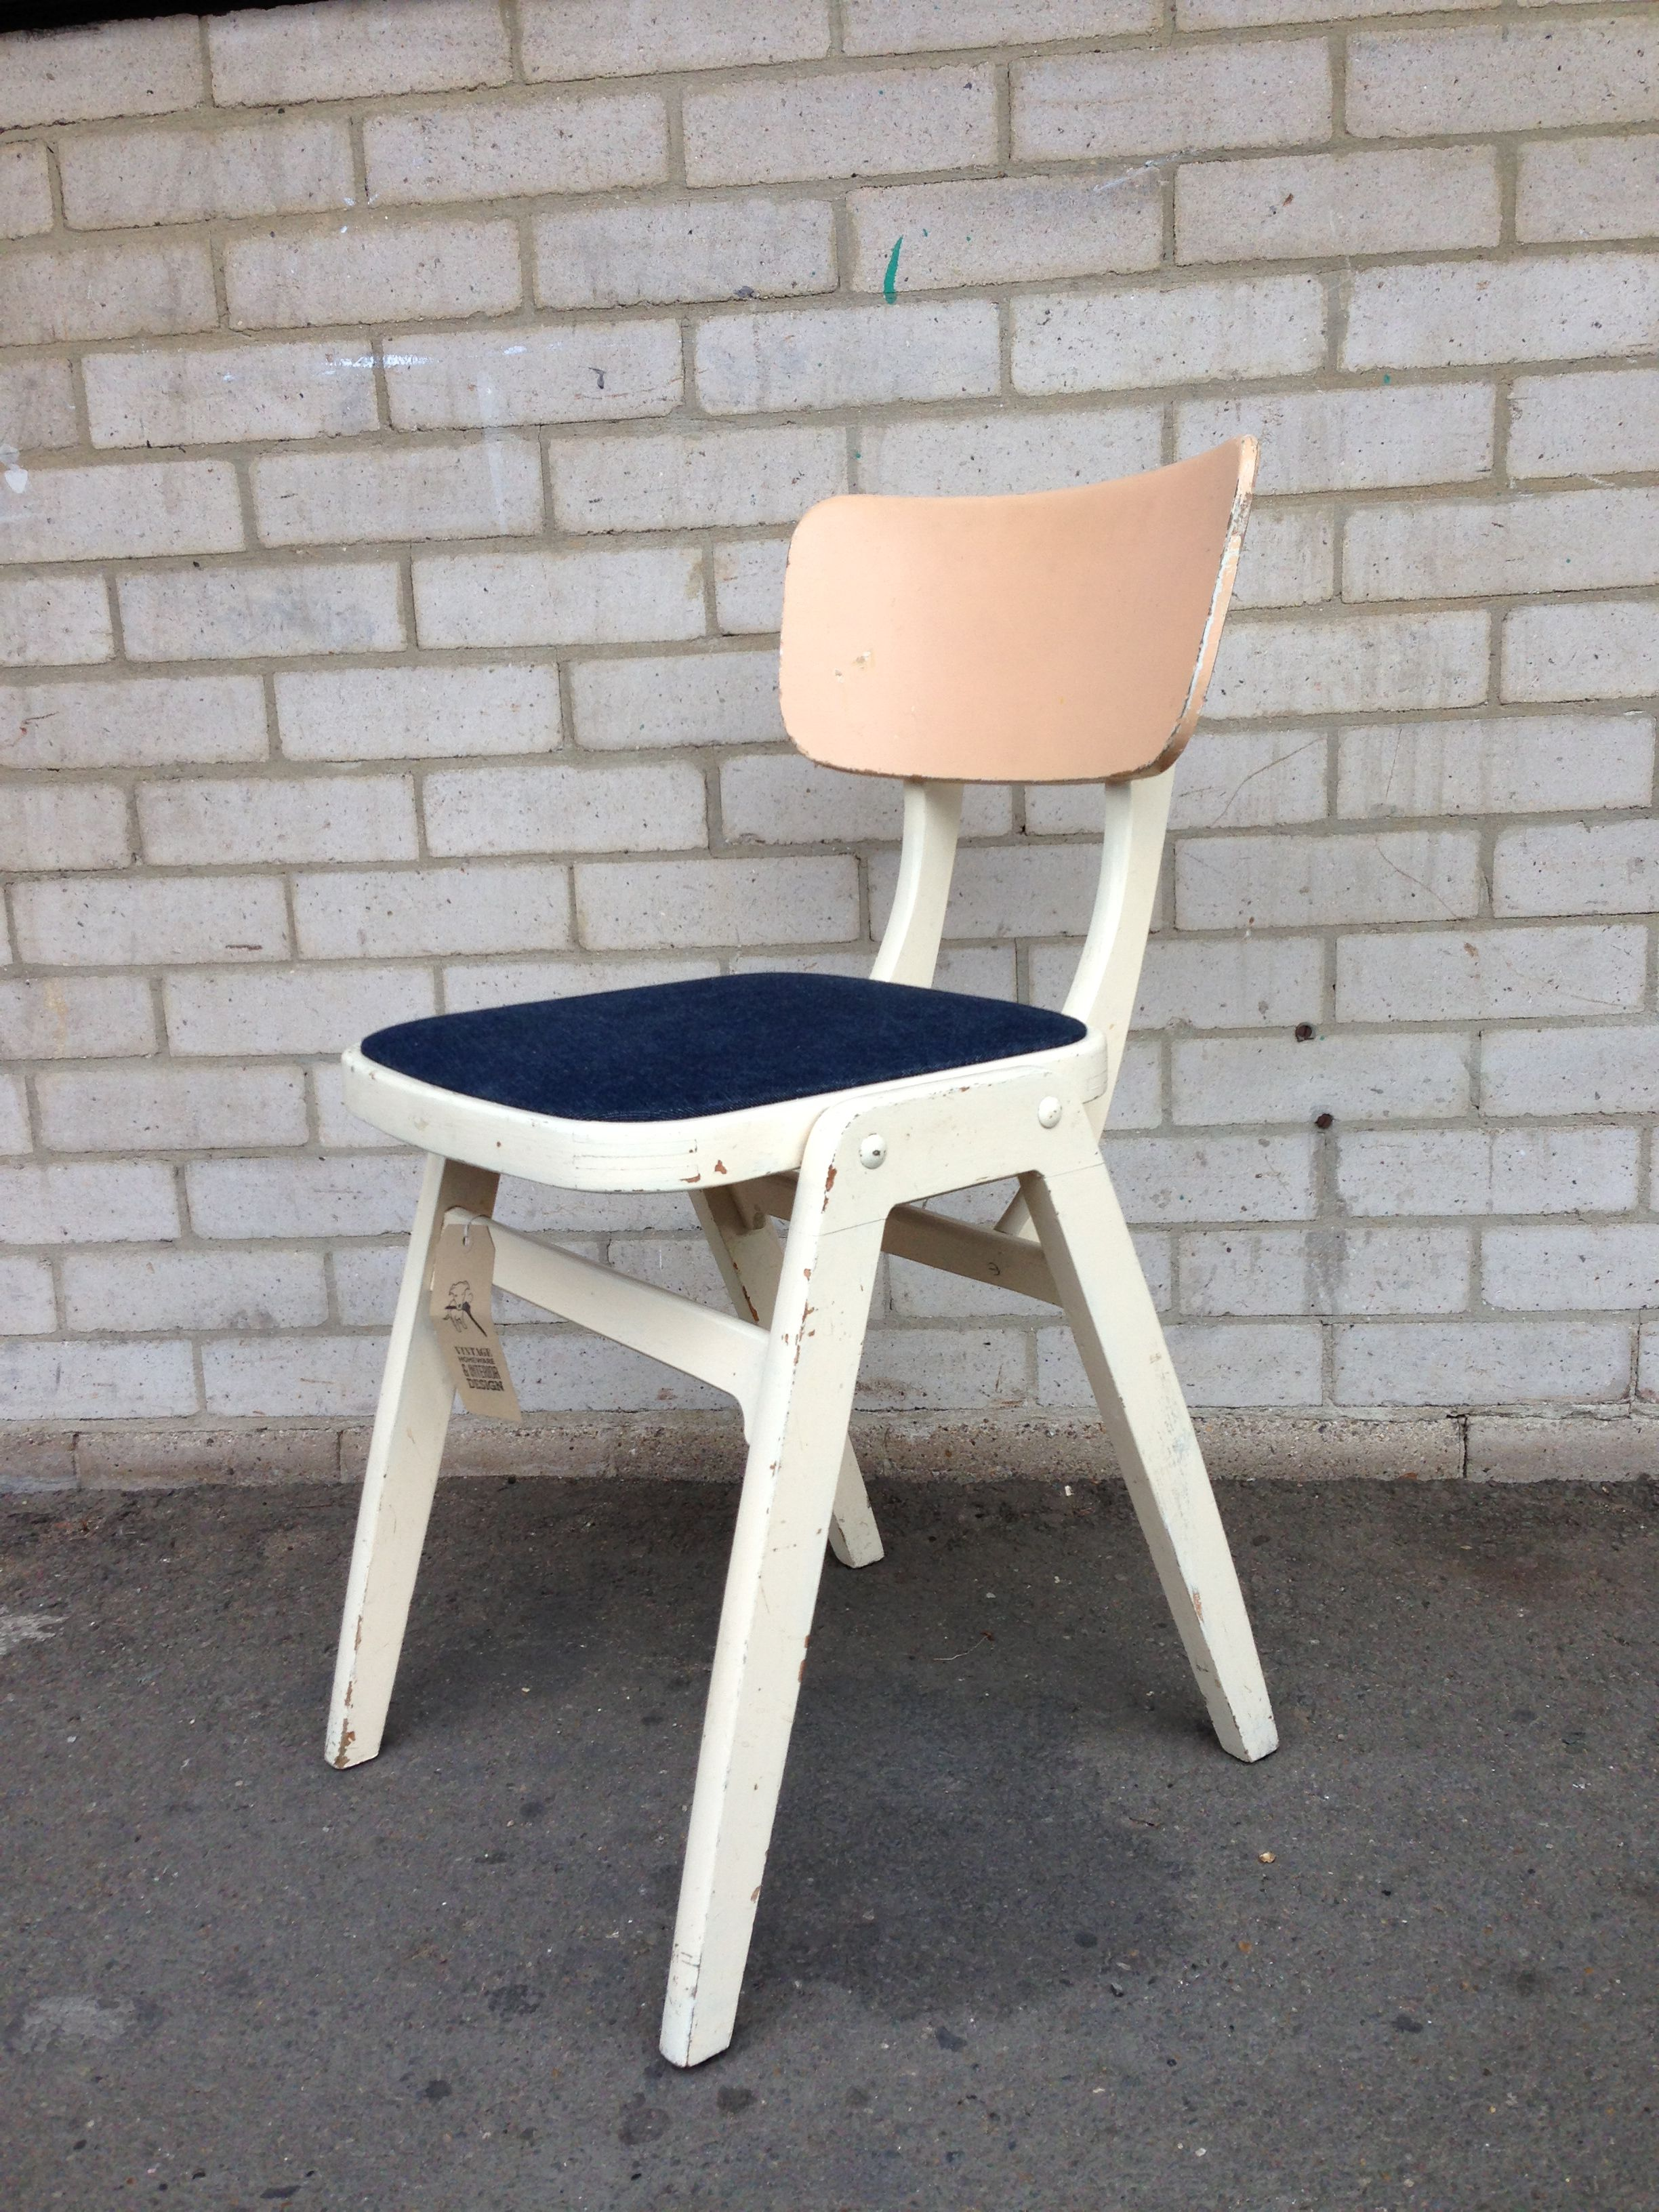 1950 s benchairs british made and designed for cafe s painted white rh pinterest com